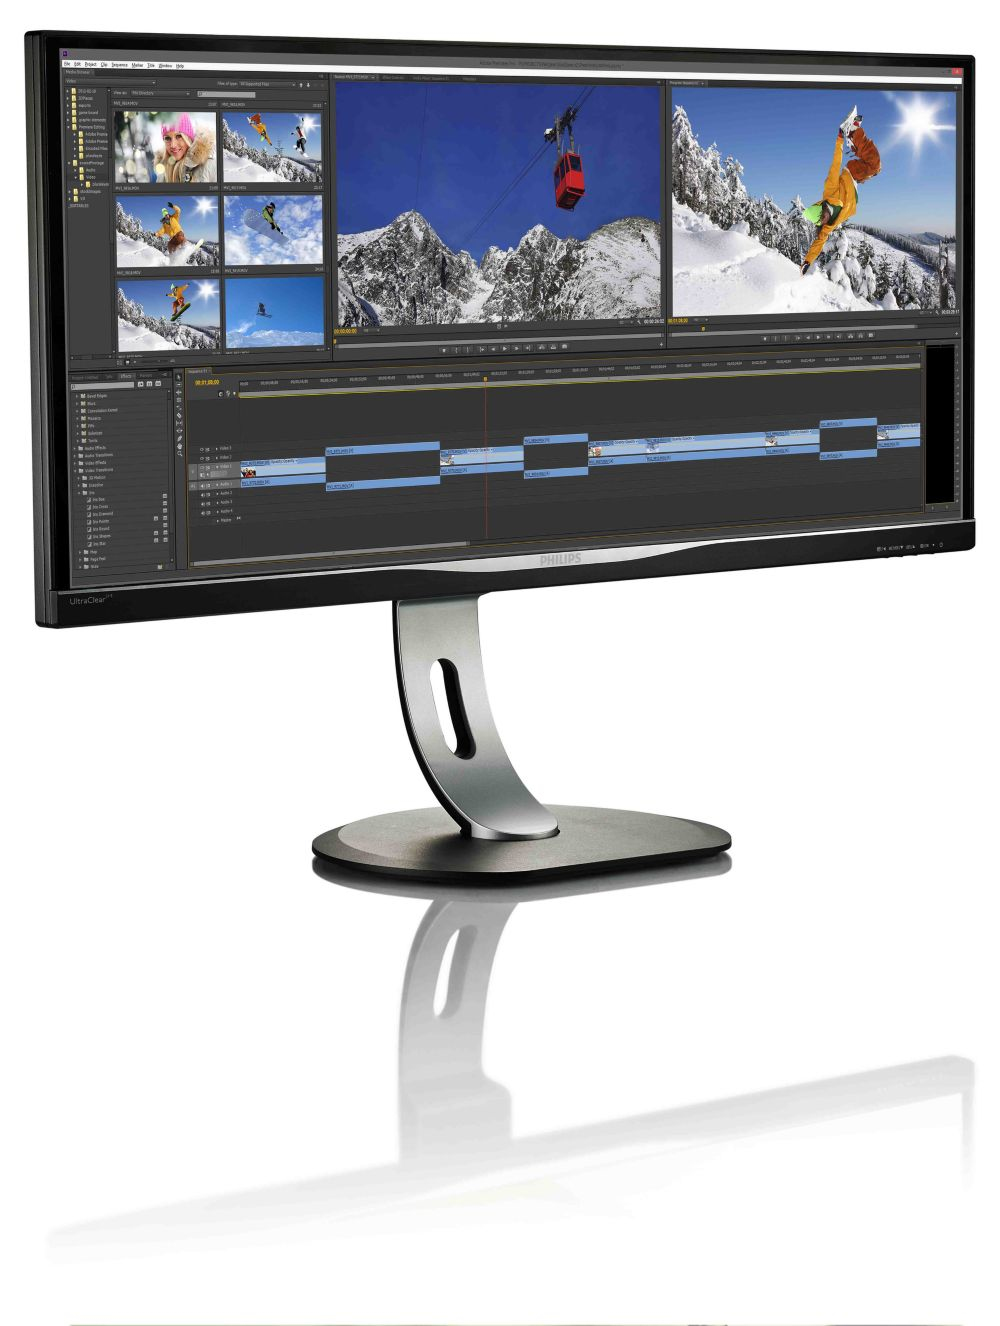 Philips Brilliance UltraWide LCD Display with MultiView